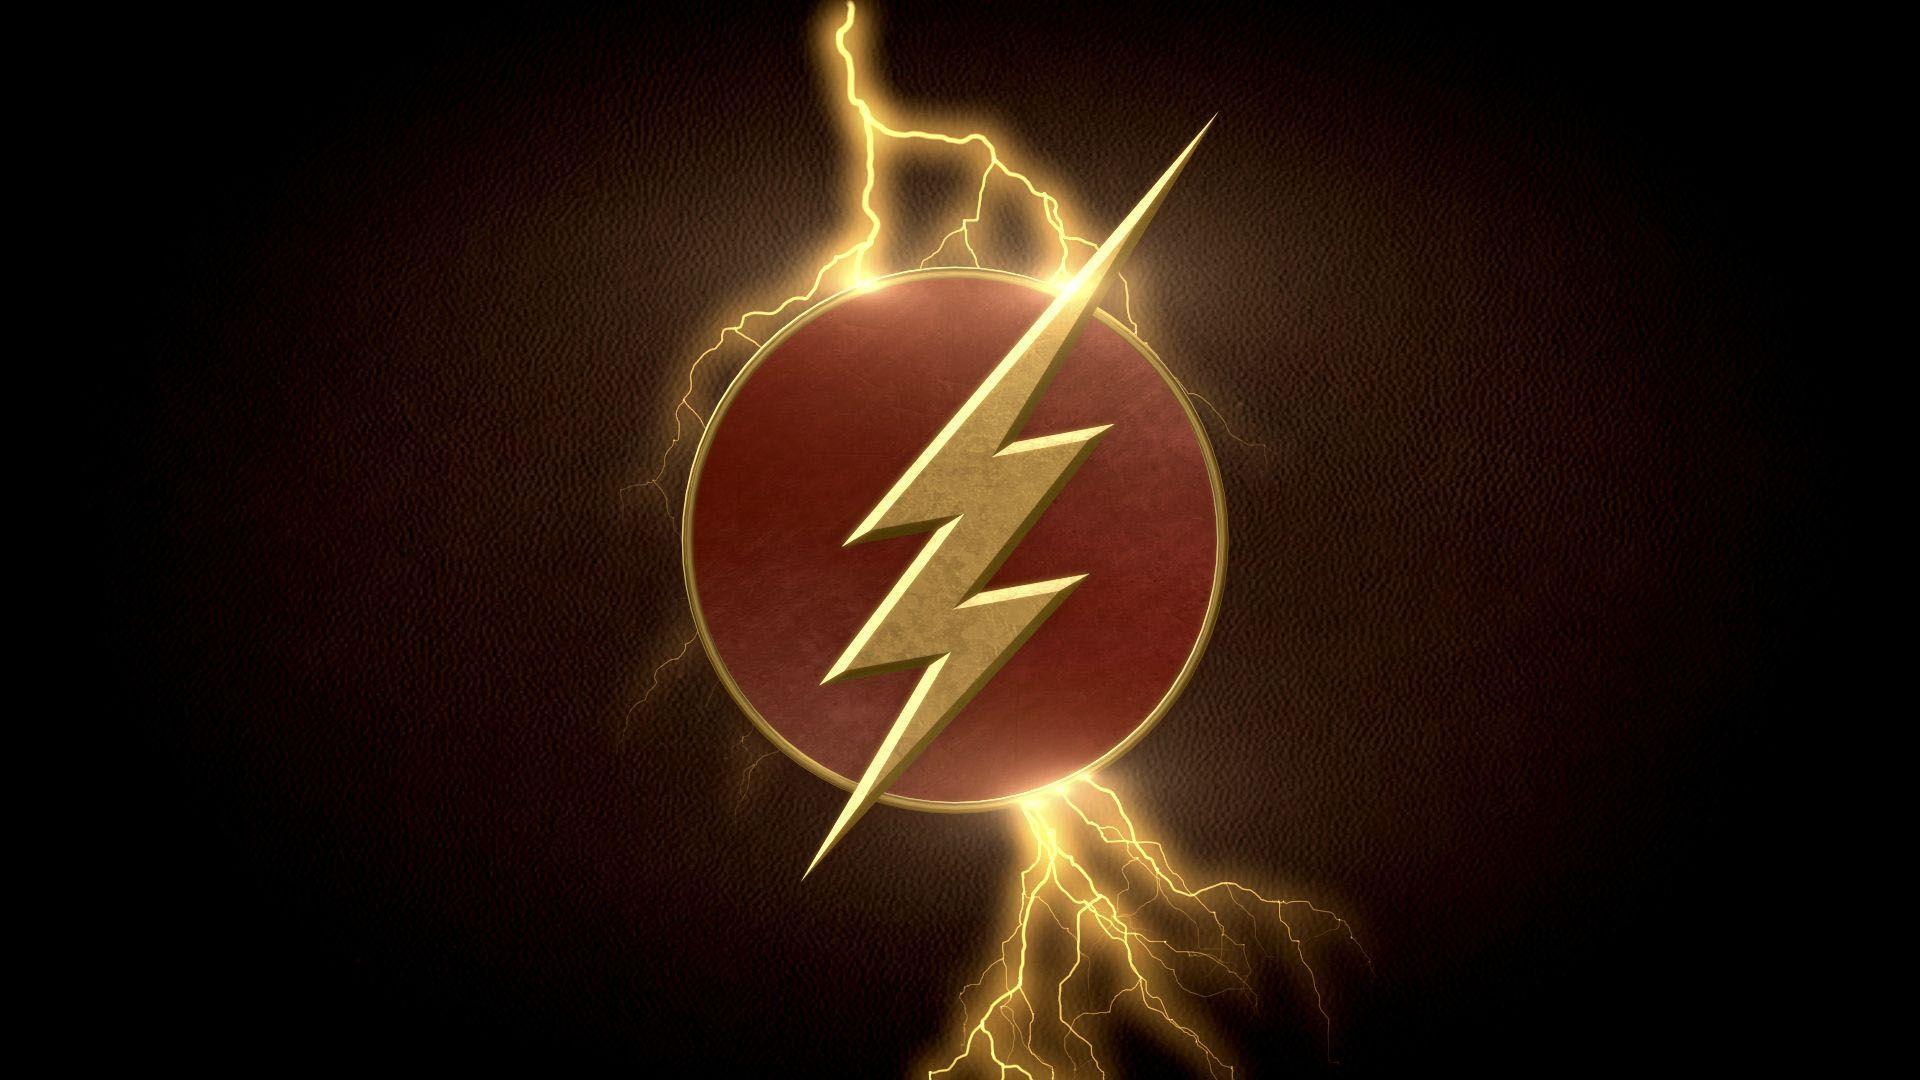 Flash Symbol Wallpapers Top Free Flash Symbol Backgrounds Wallpaperaccess We have 66+ amazing background pictures carefully picked by our community. flash symbol wallpapers top free